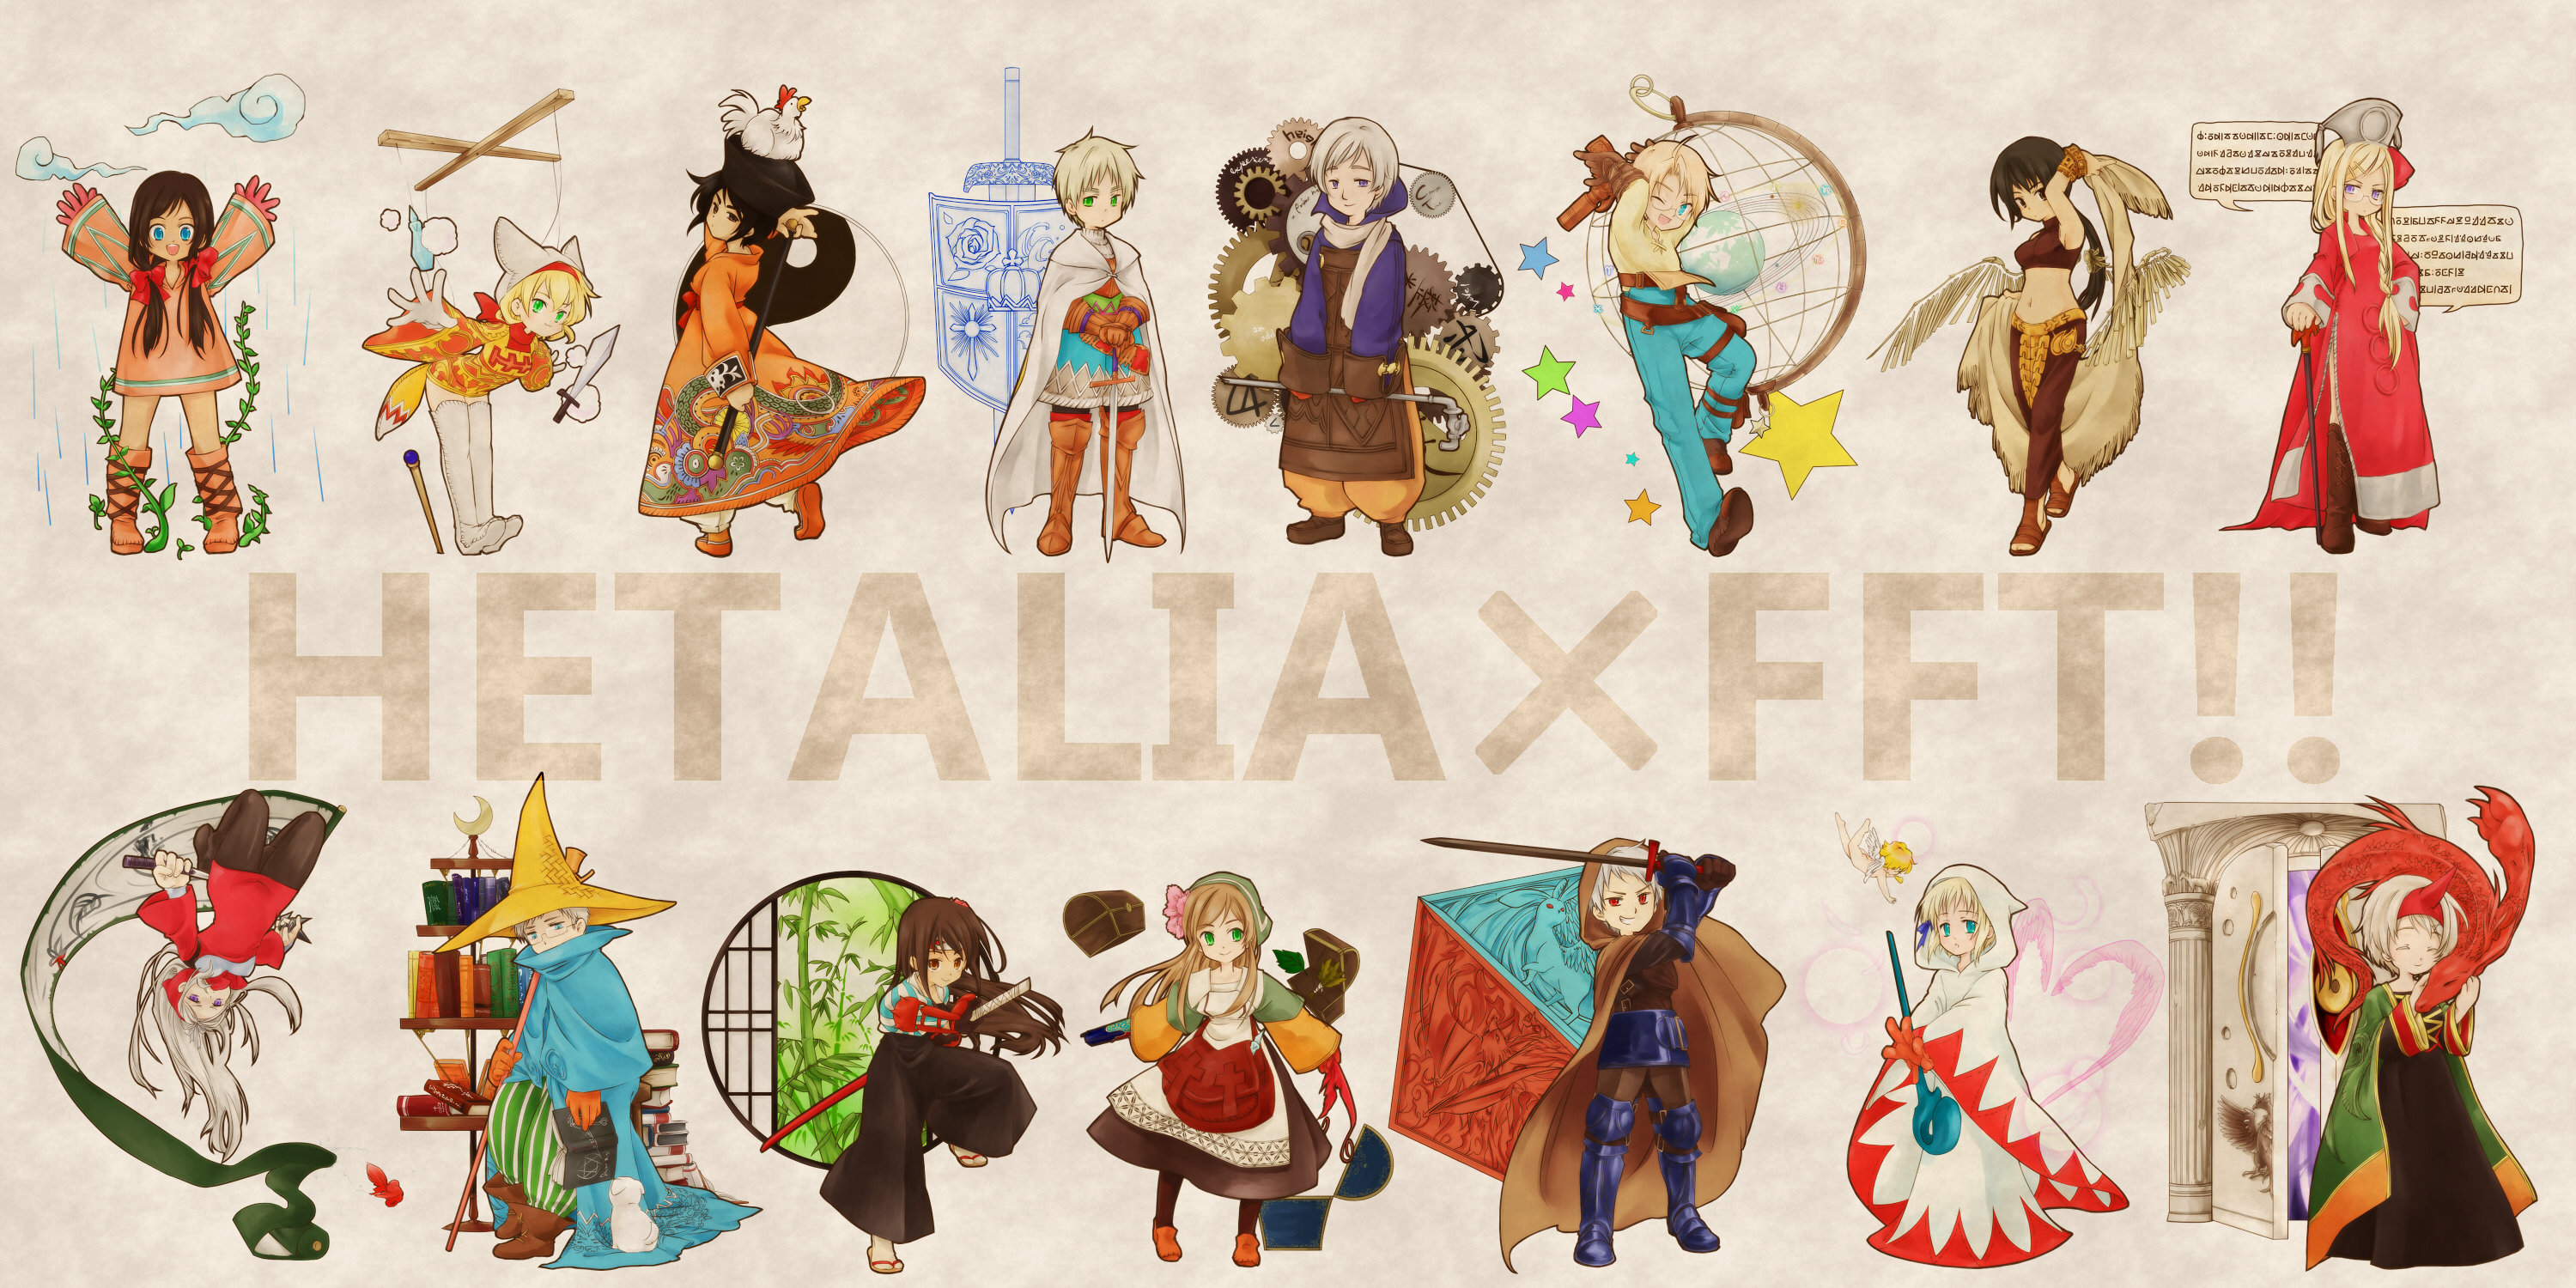 Axis Powers Hetalia wallpaper 3000x1500 38617 WallpaperUP 3000x1500